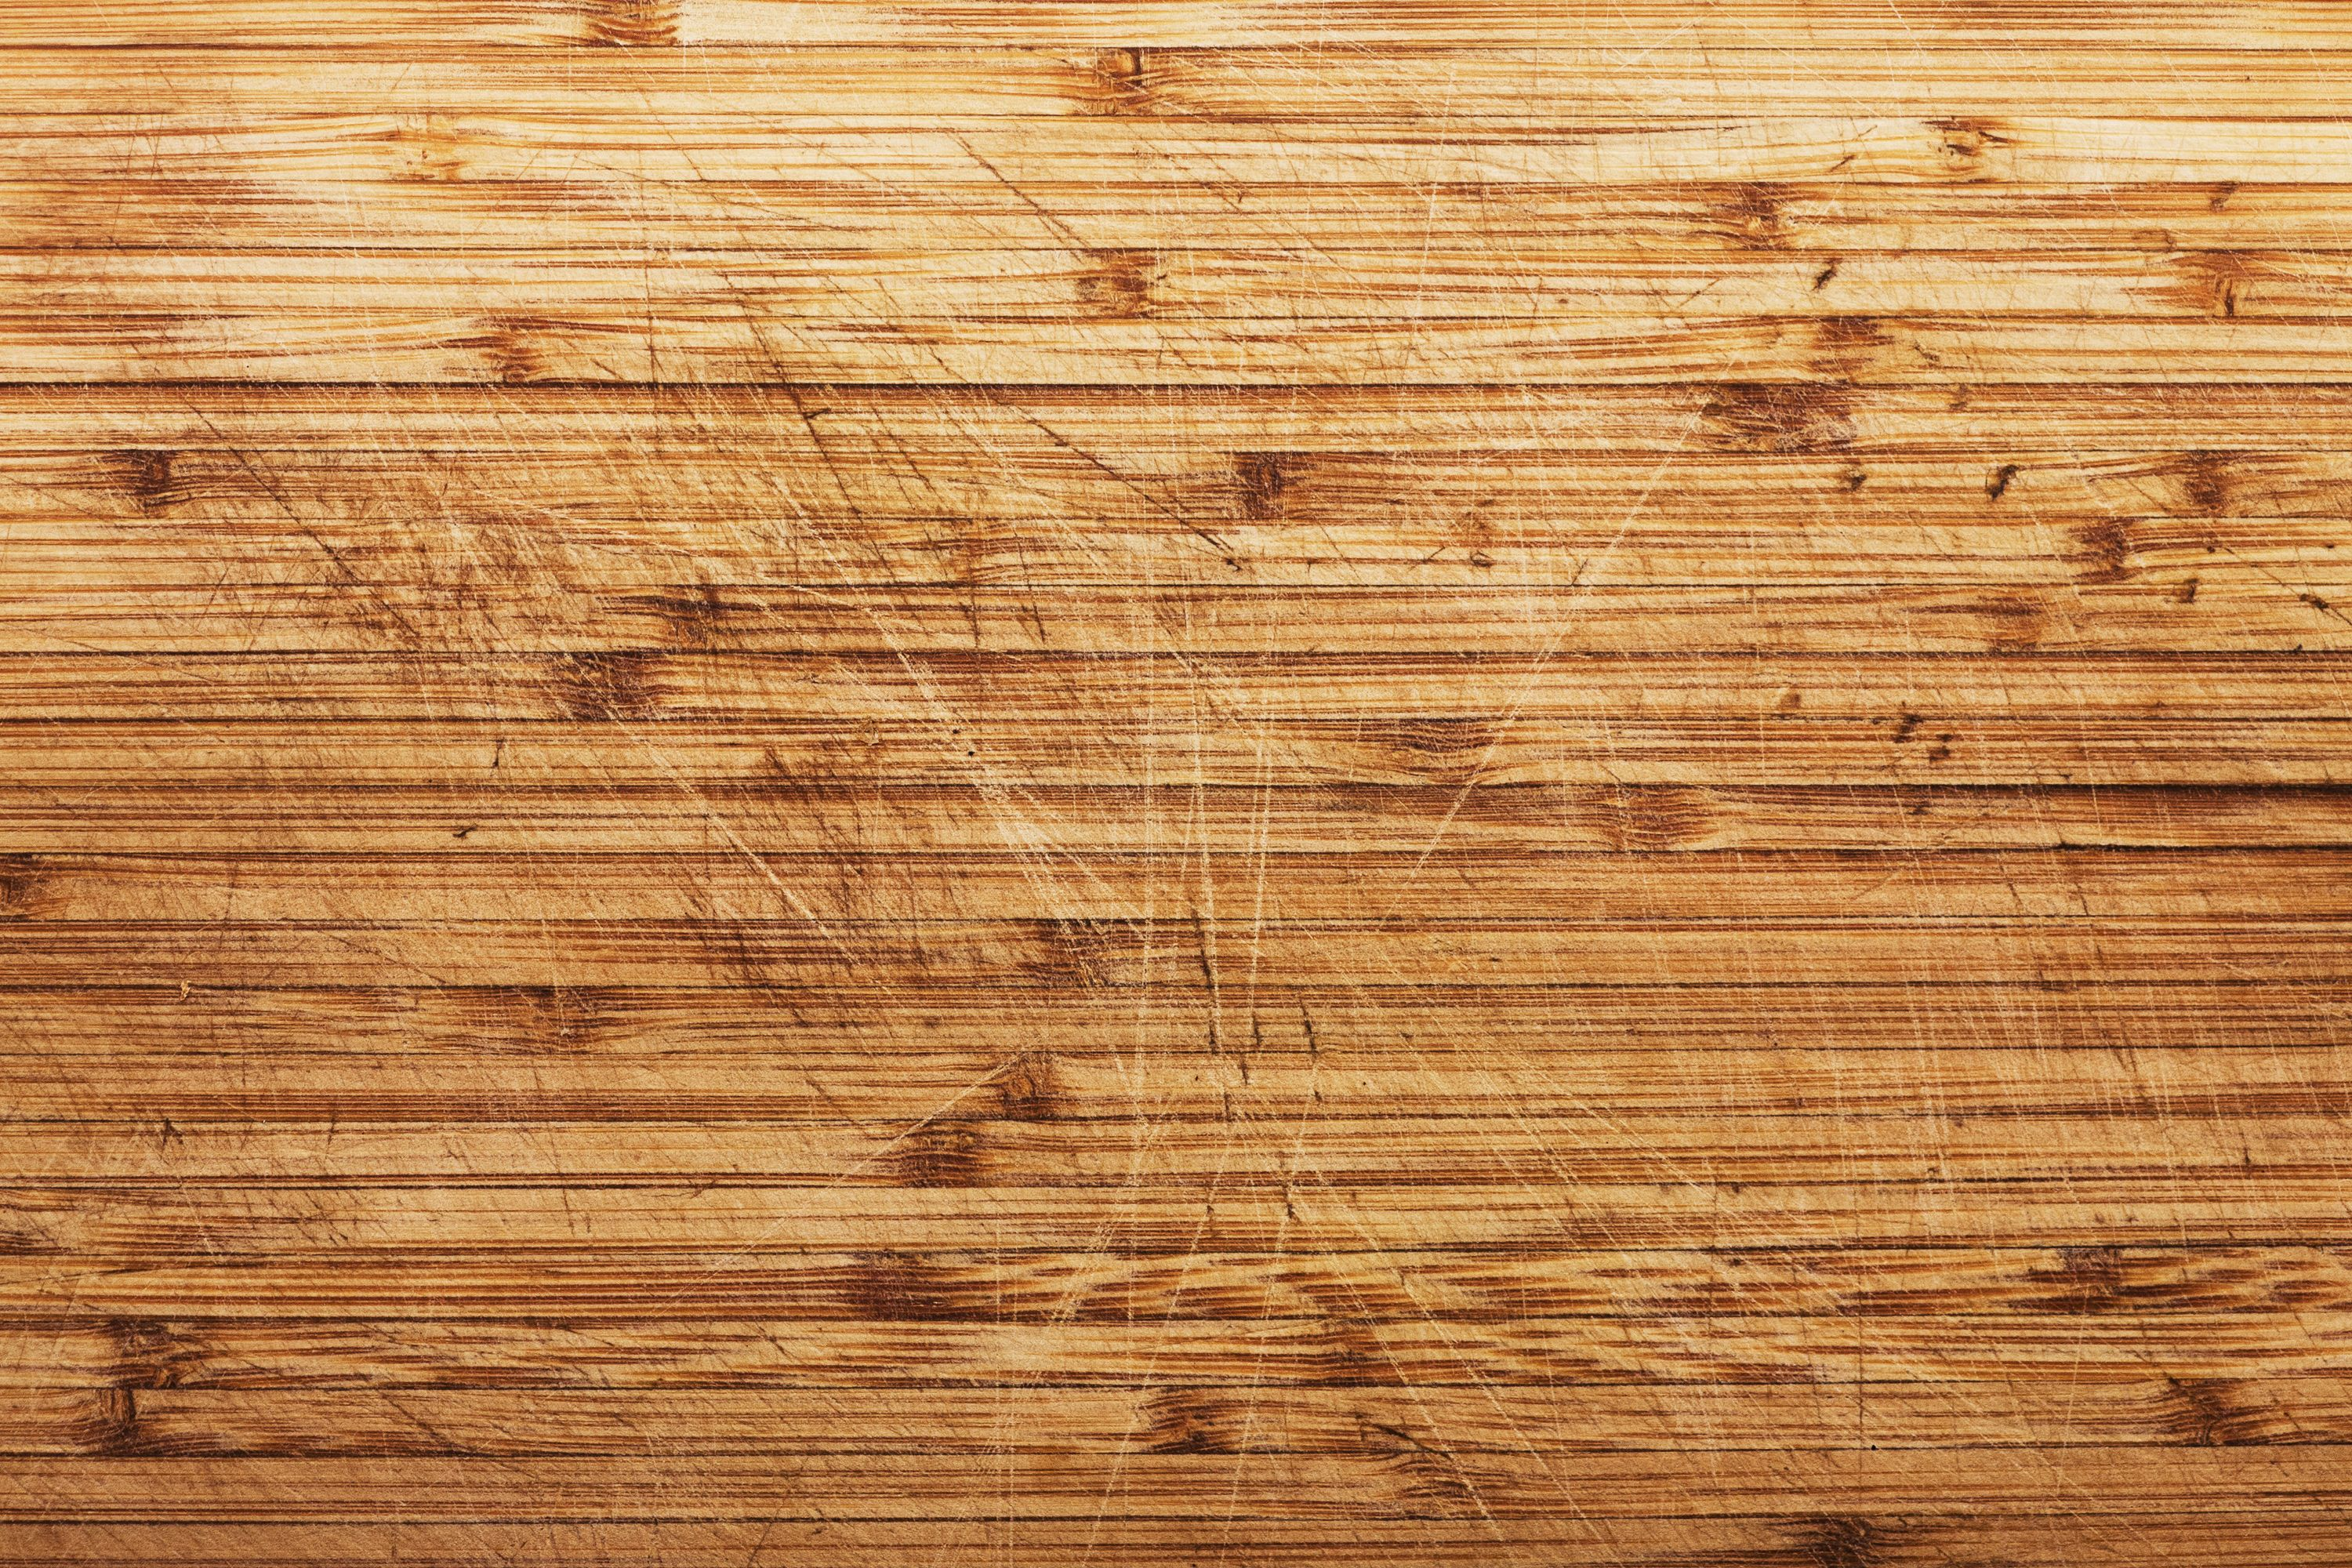 Wooden cutting board texture resource stuff in